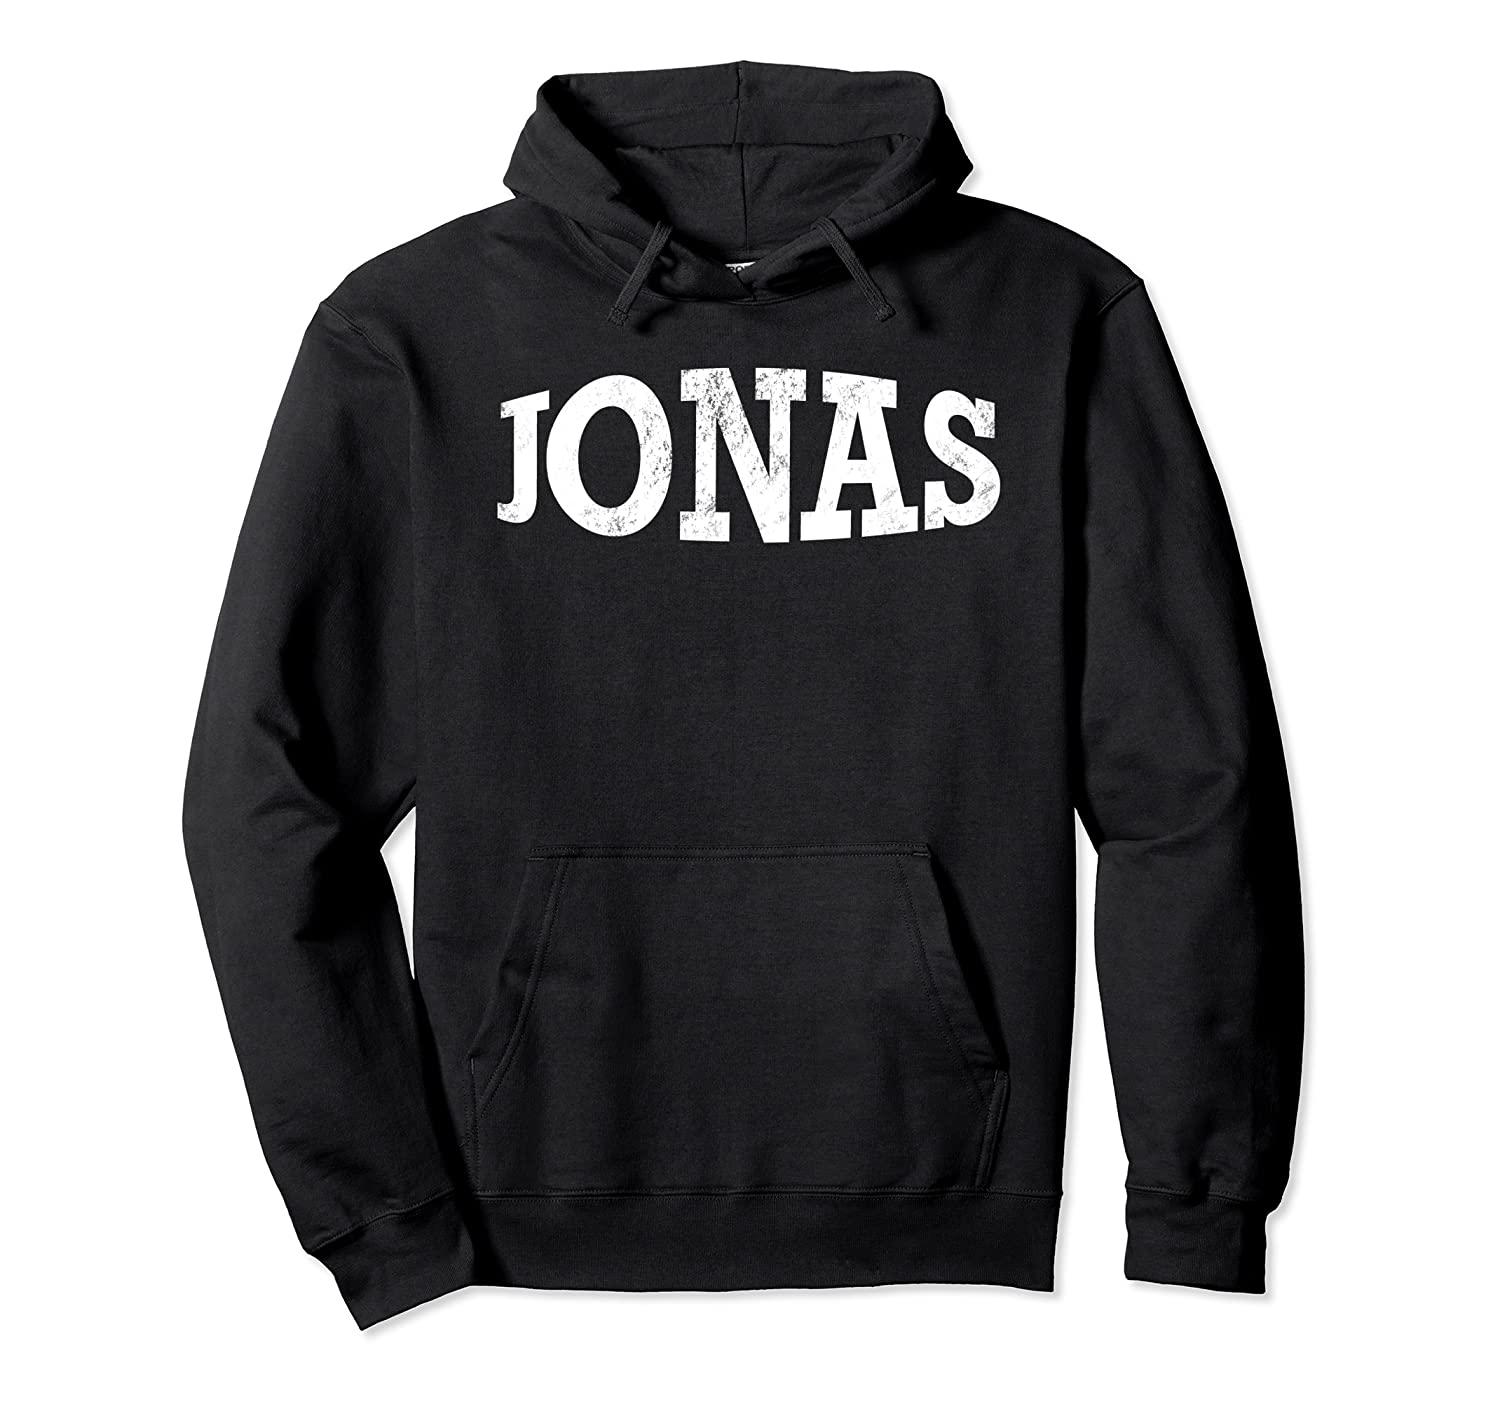 Jonas First Given Name Pride Funny Shirts Unisex Pullover Hoodie